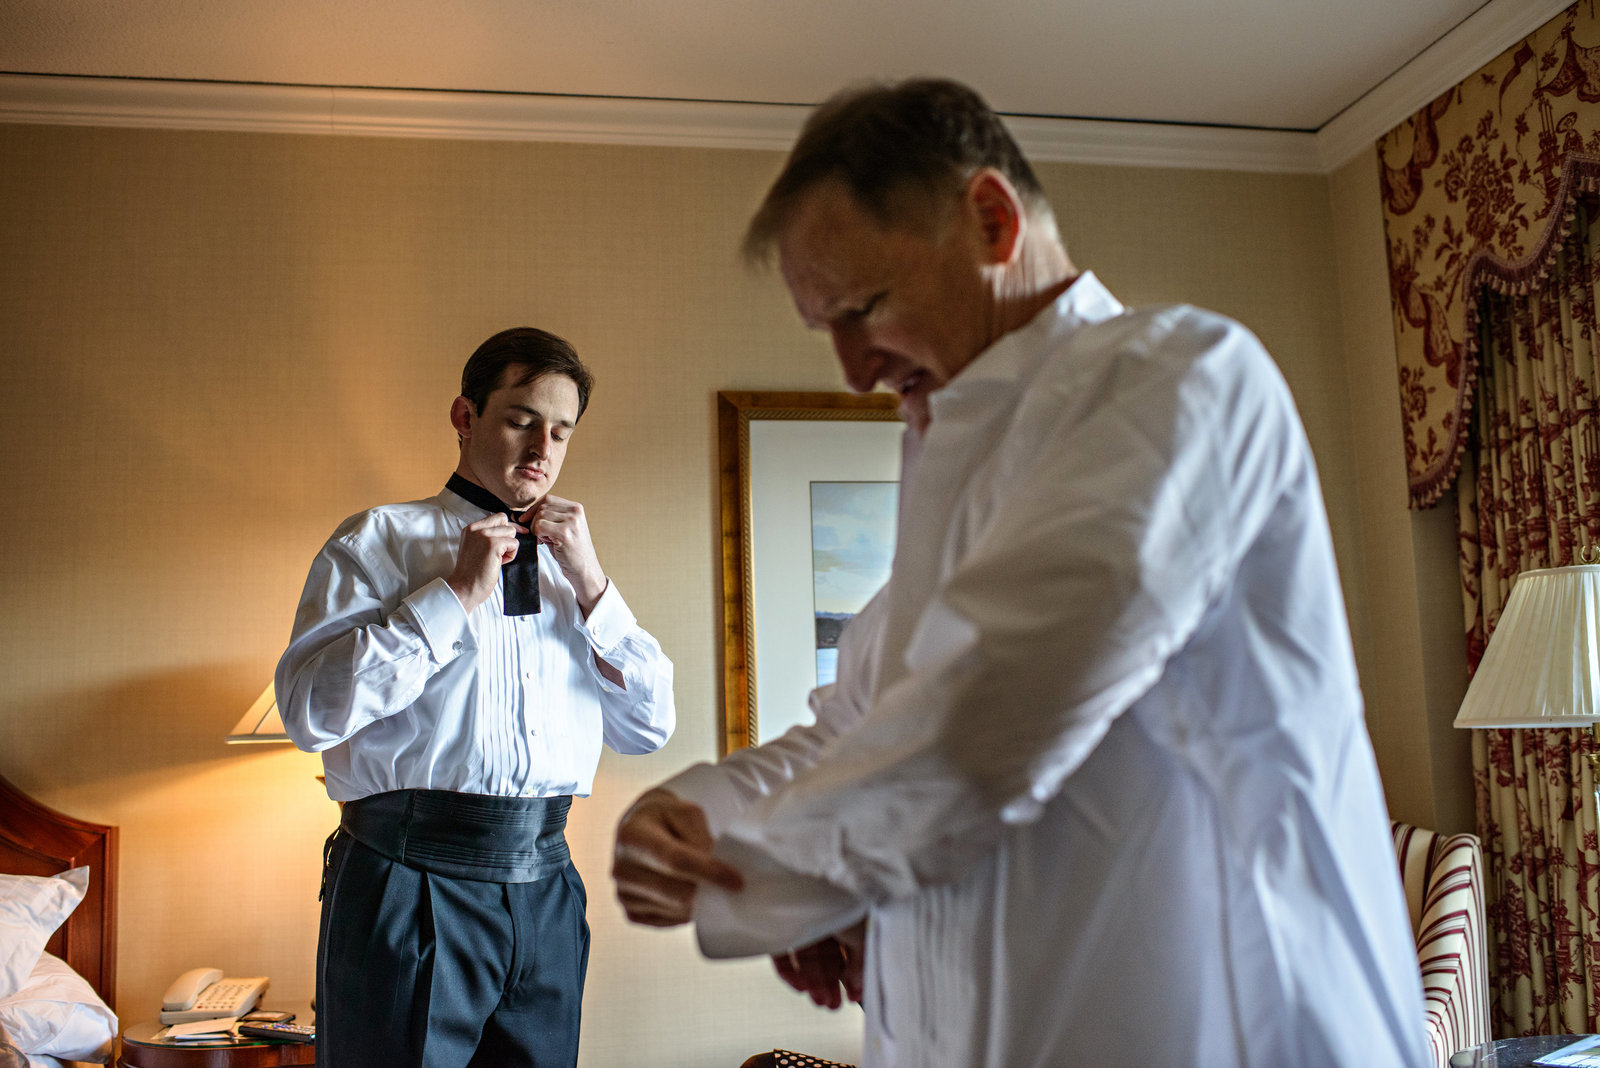 A groom gets ready with his dad at a hotel in Philadelphia.